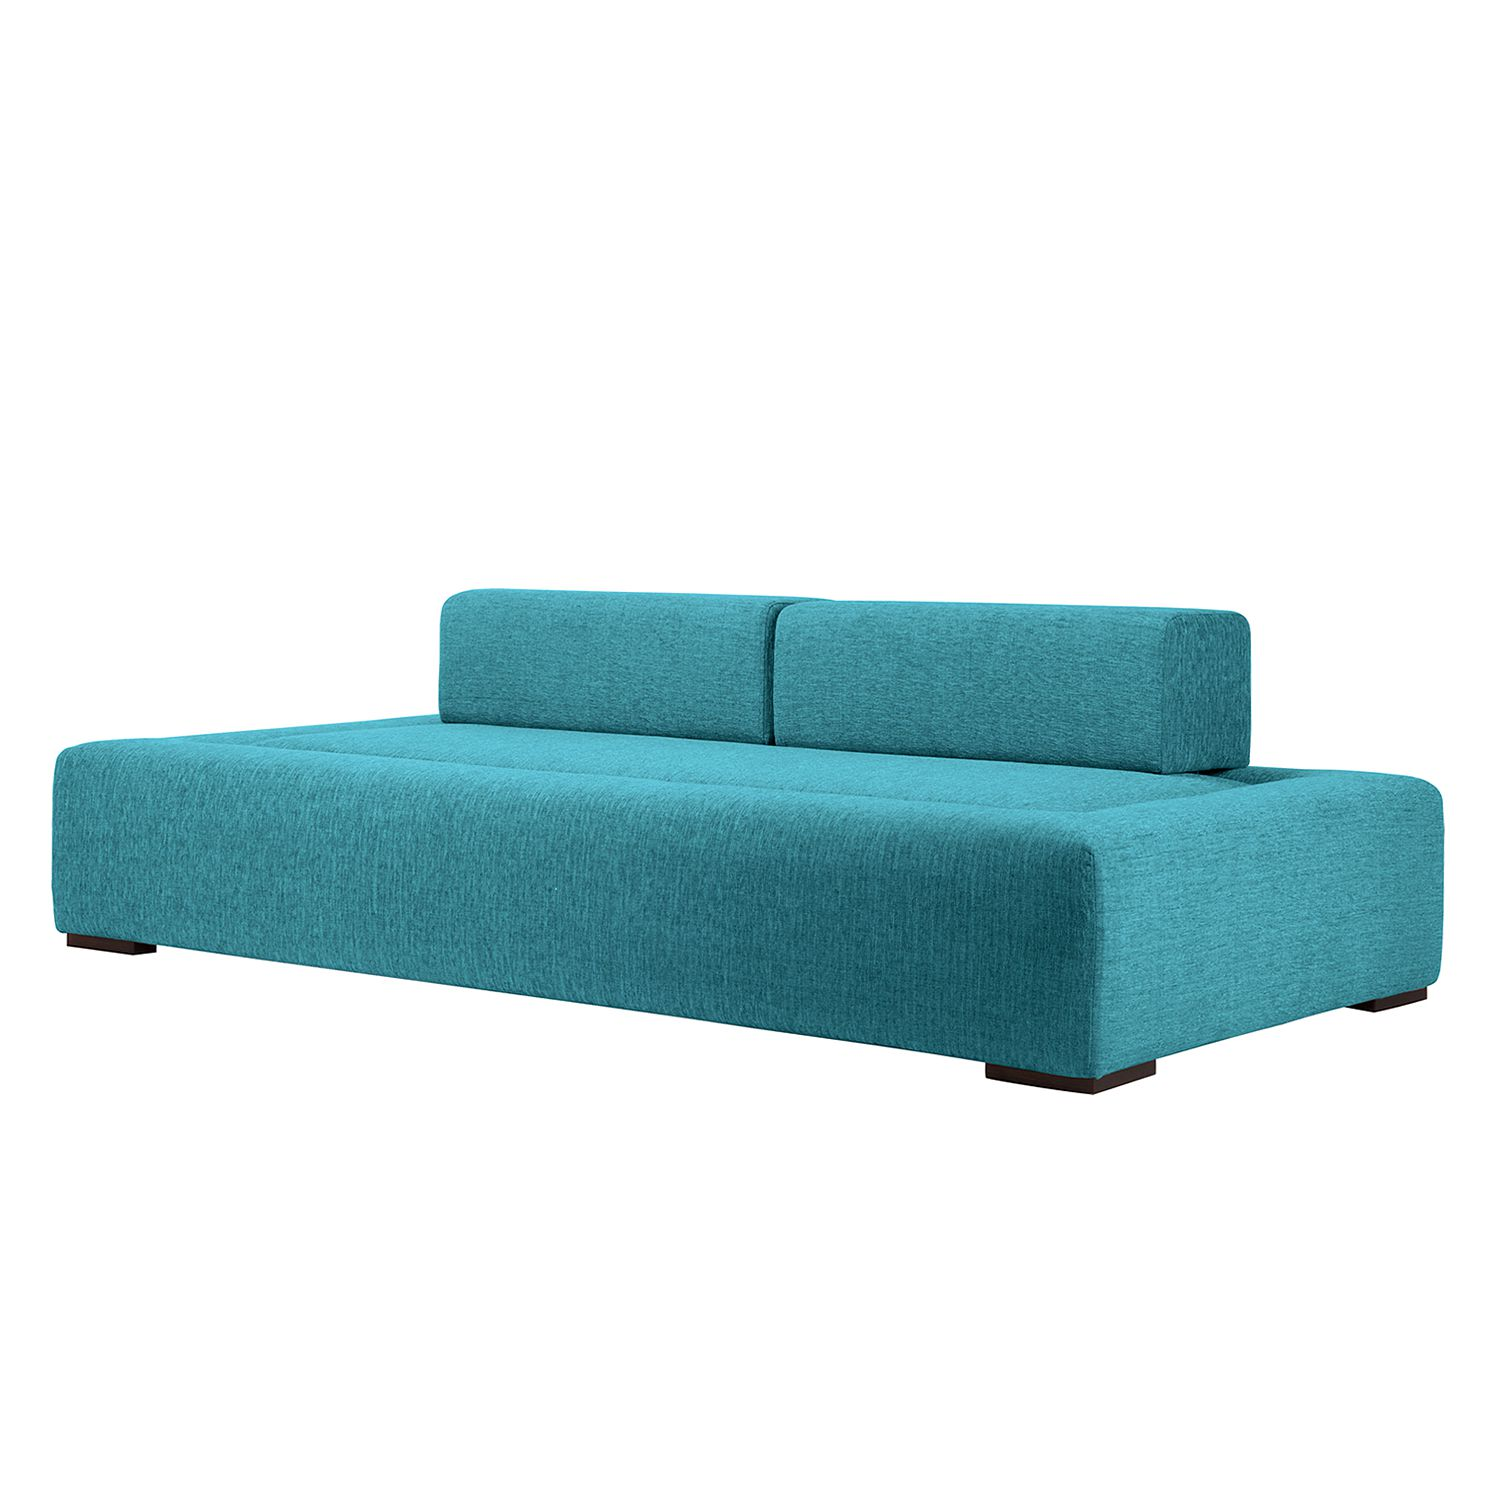 18 Ikea Tidafors Sofa Bed Fold Out Chair